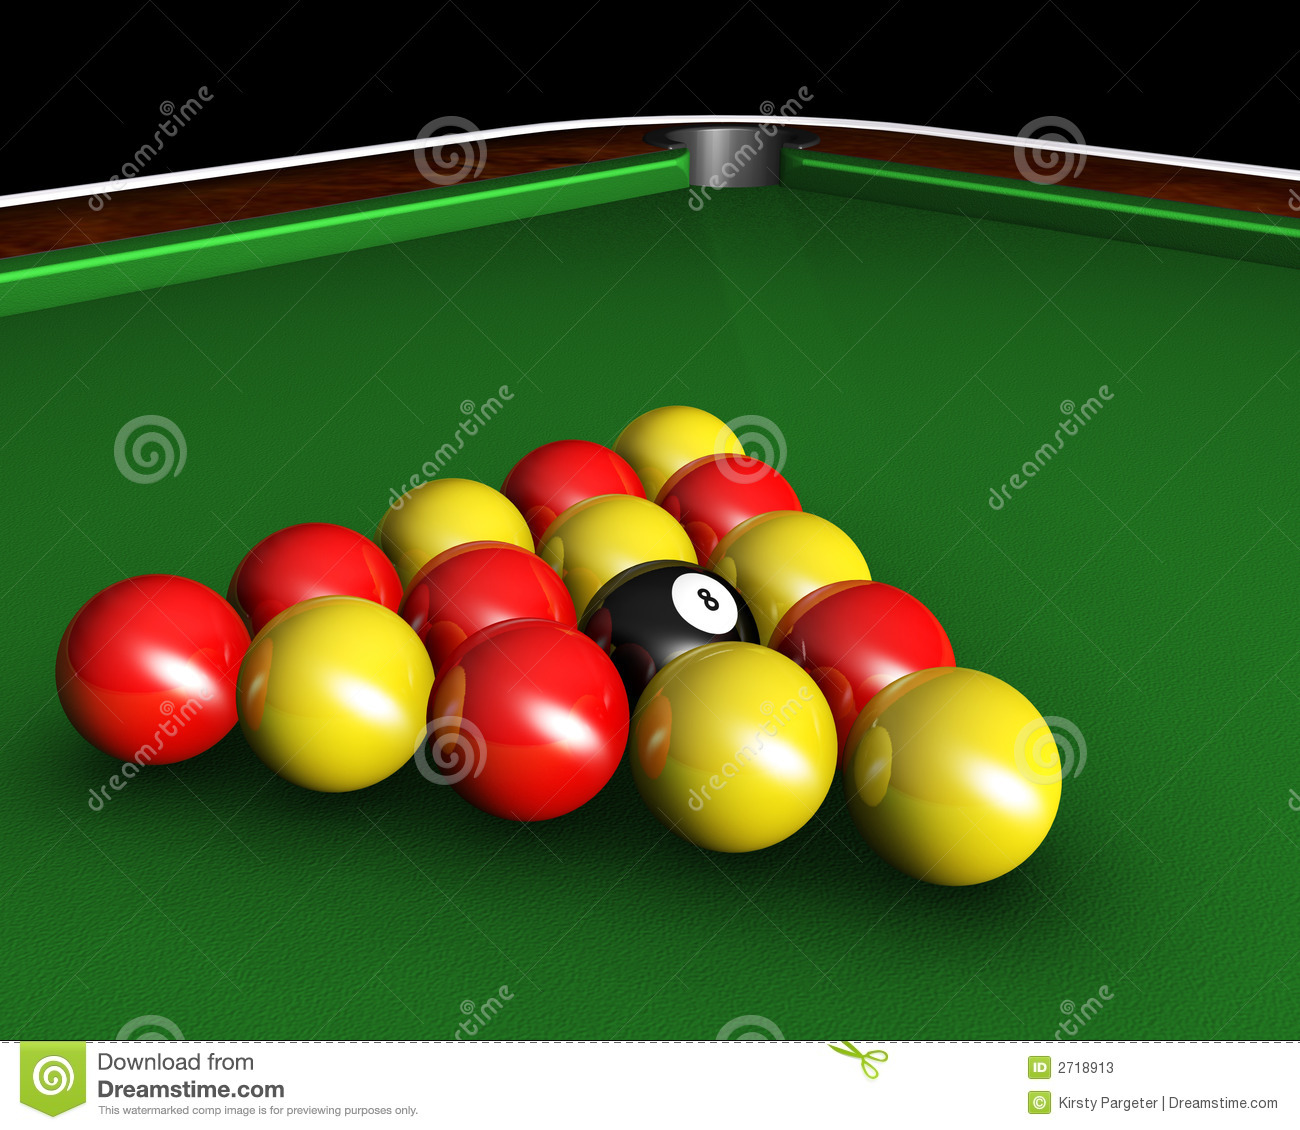 3D Render Of Pool Balls On Pool Table